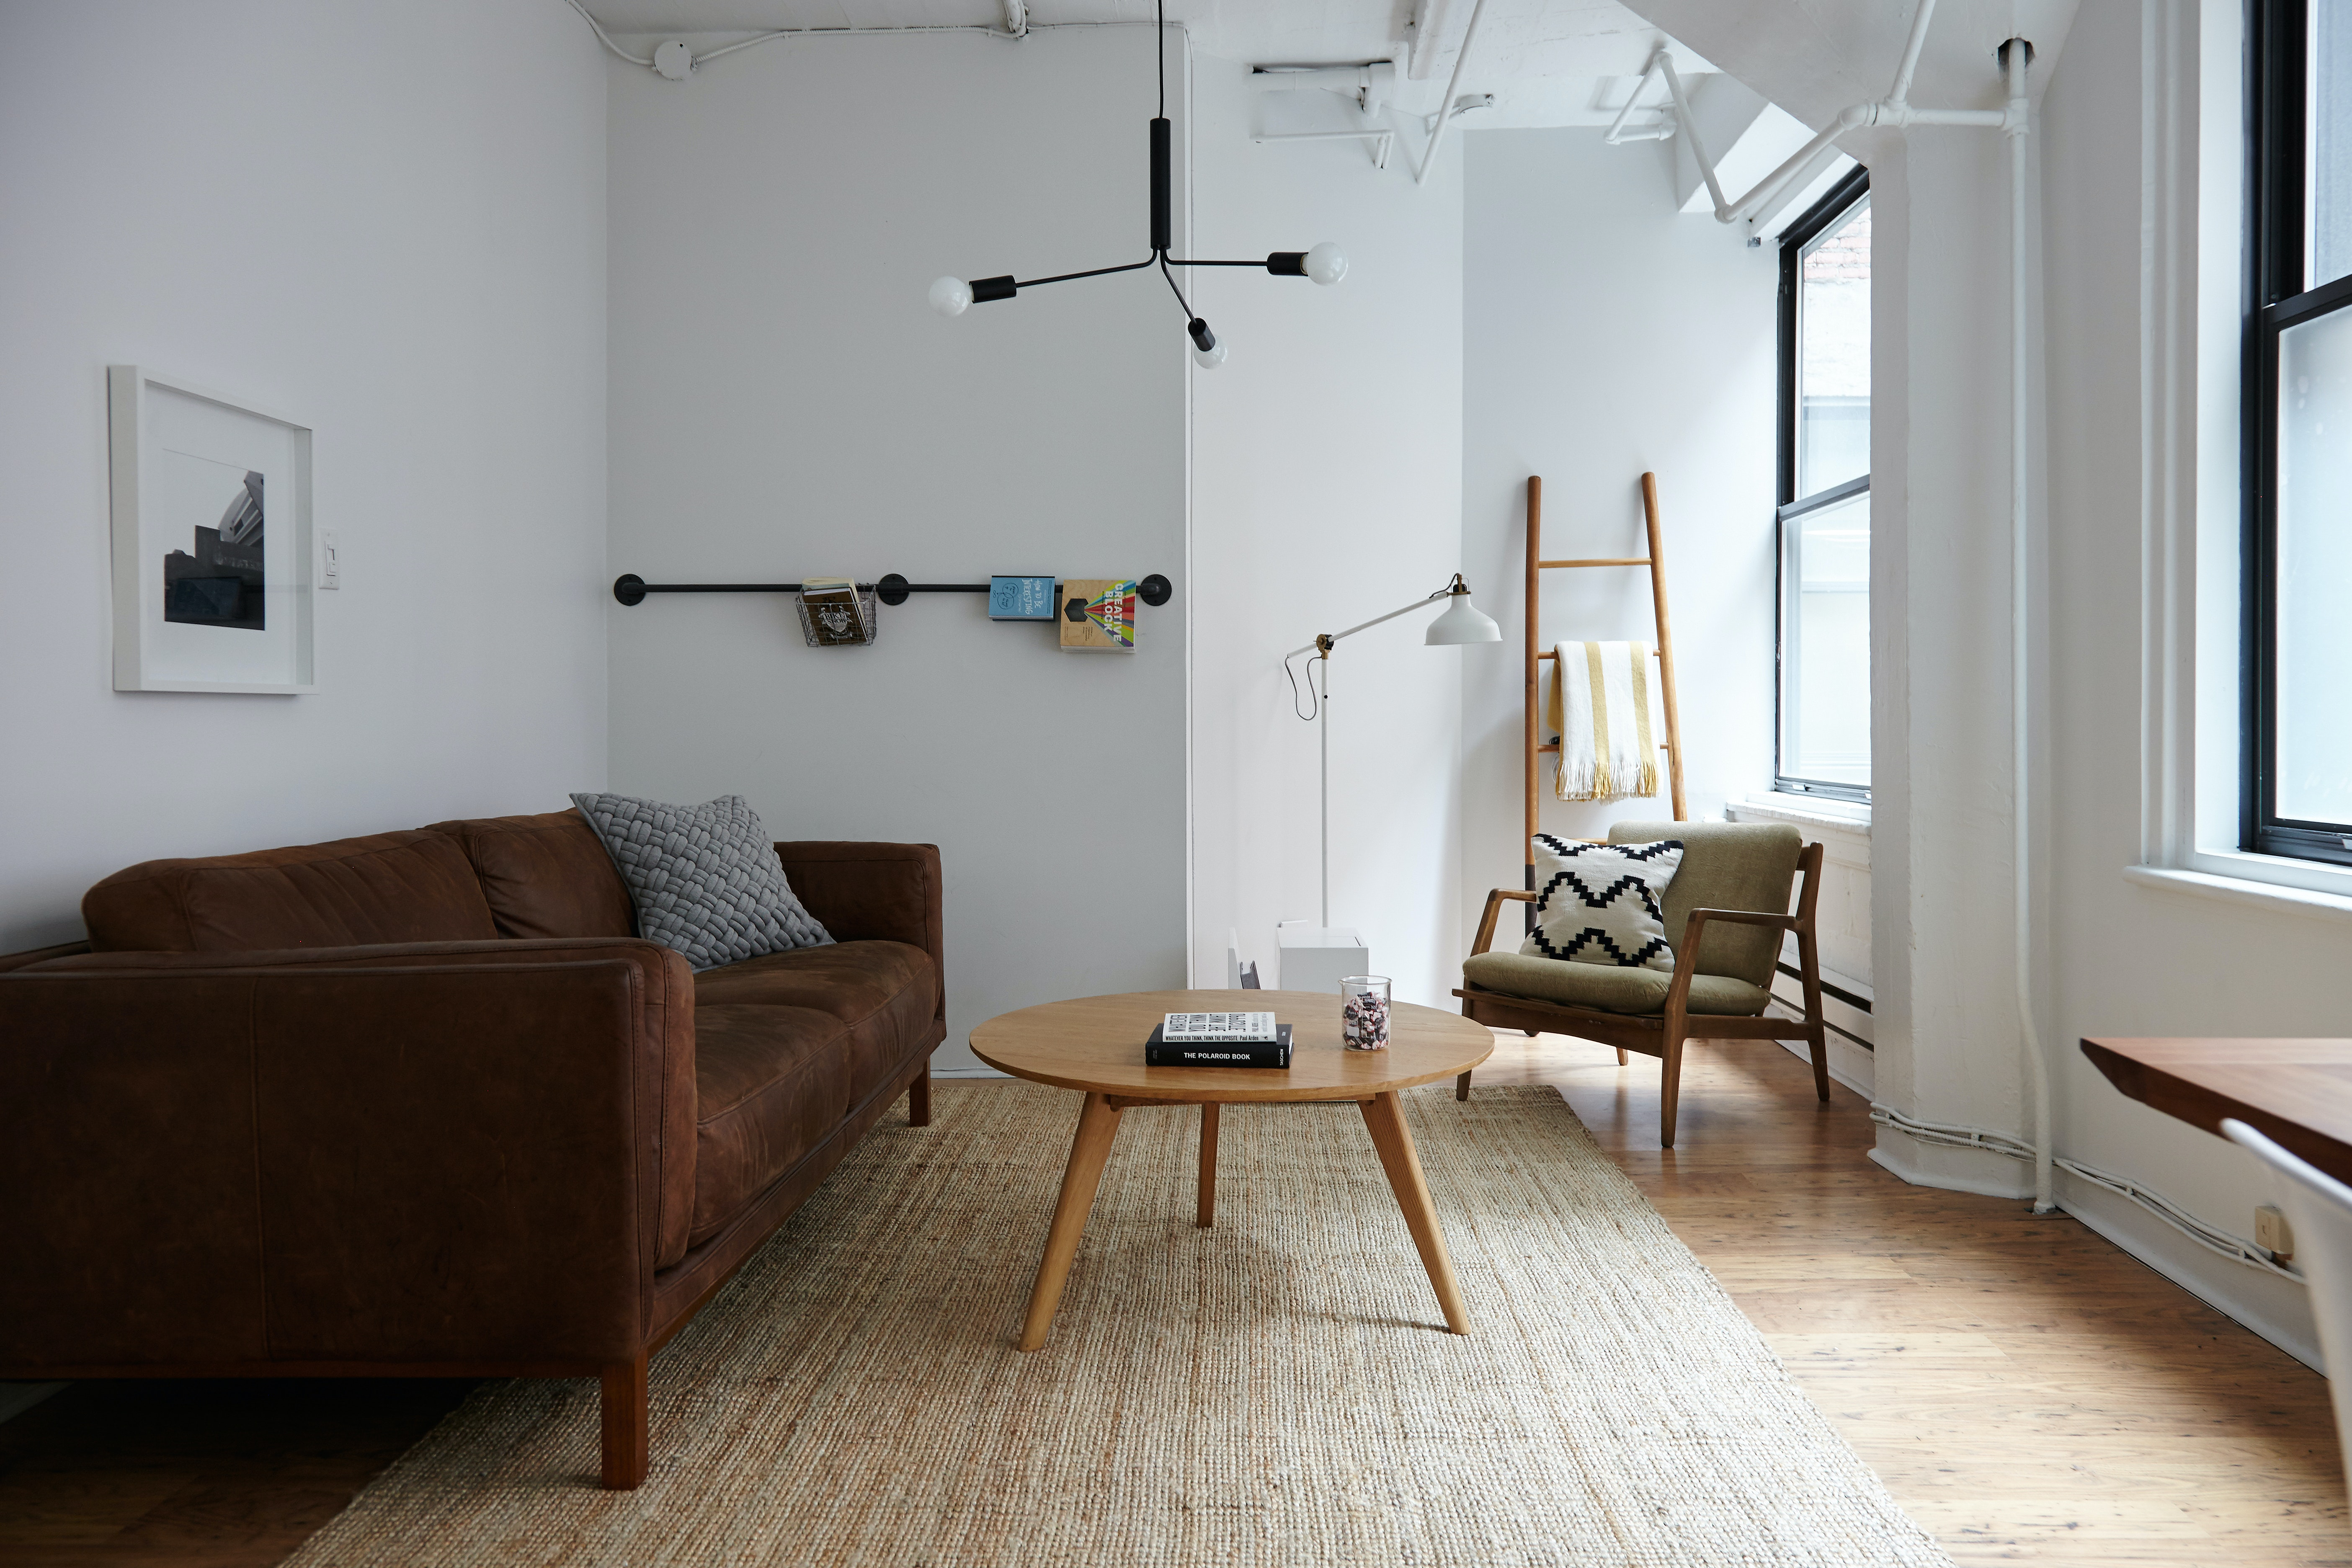 interview space at 3575 Boulevard St-Laurent ,Montreal